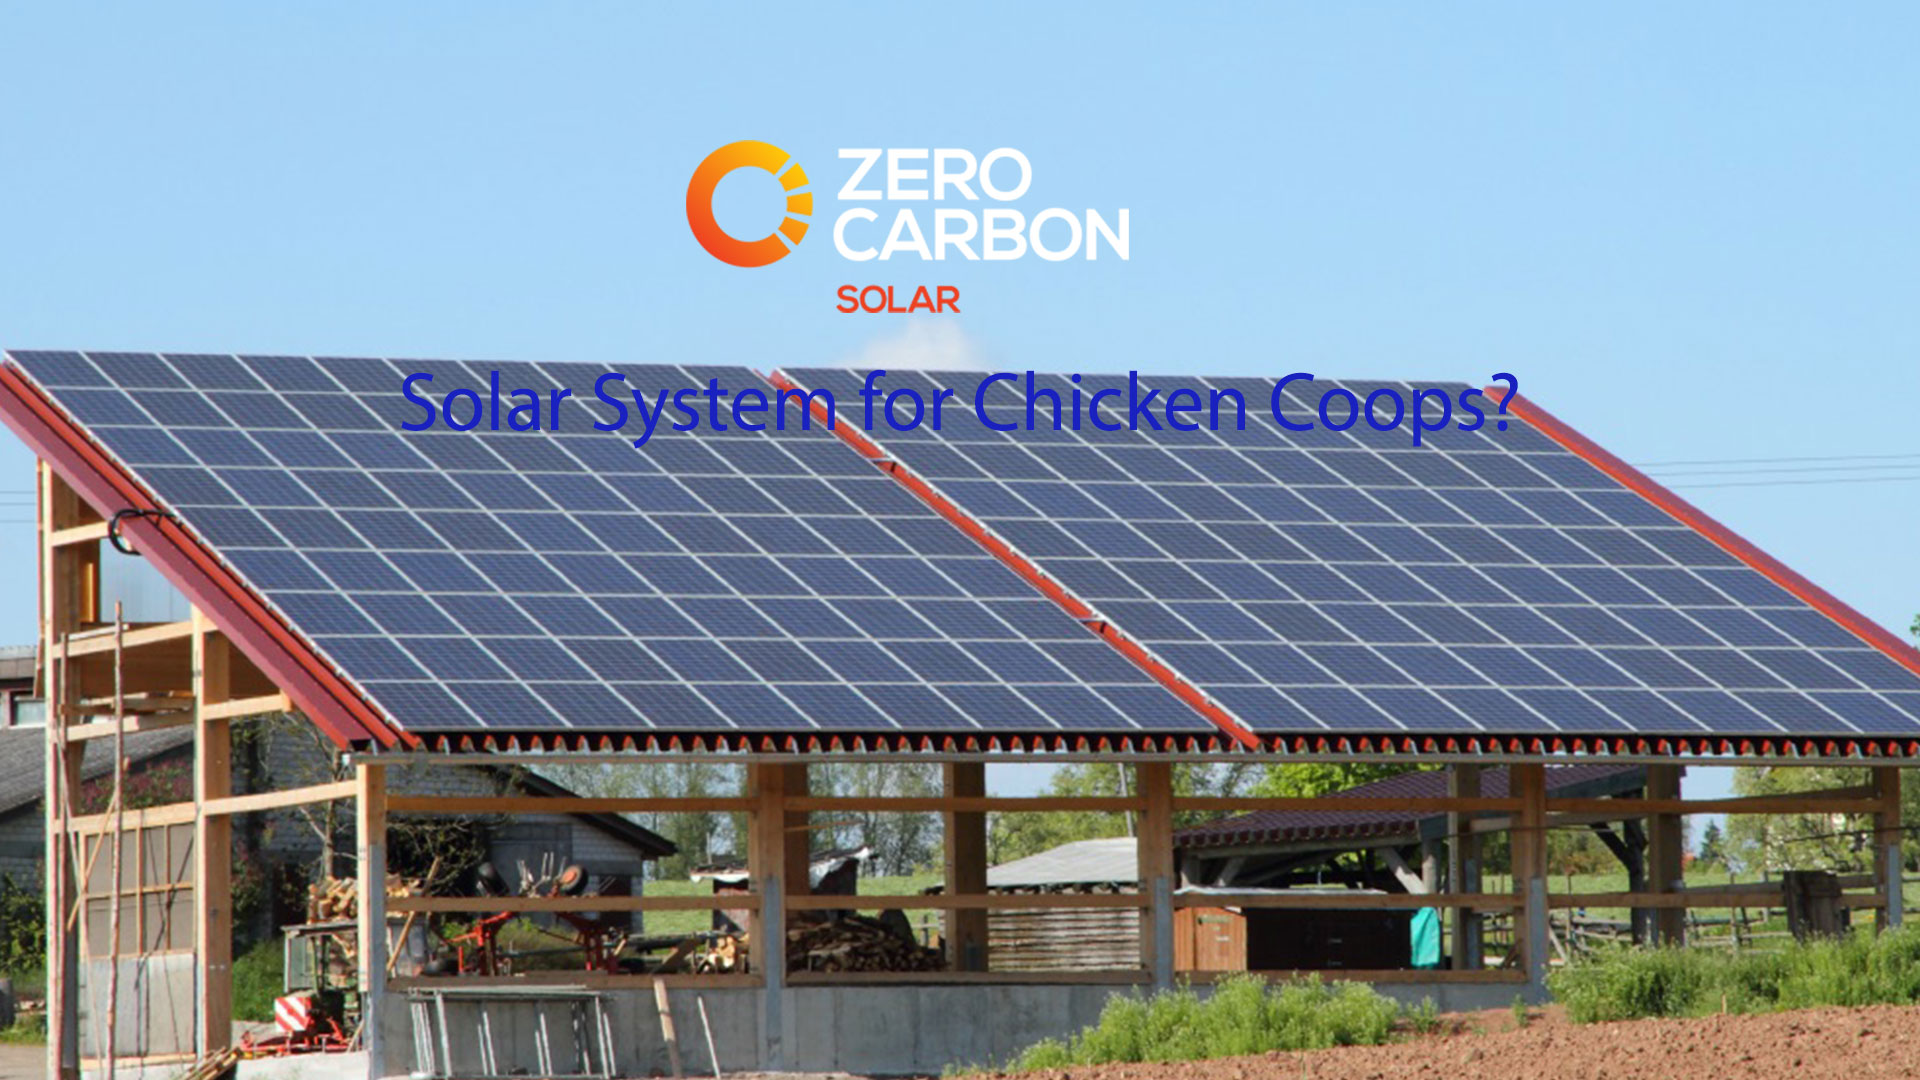 Solar system for chicken coops